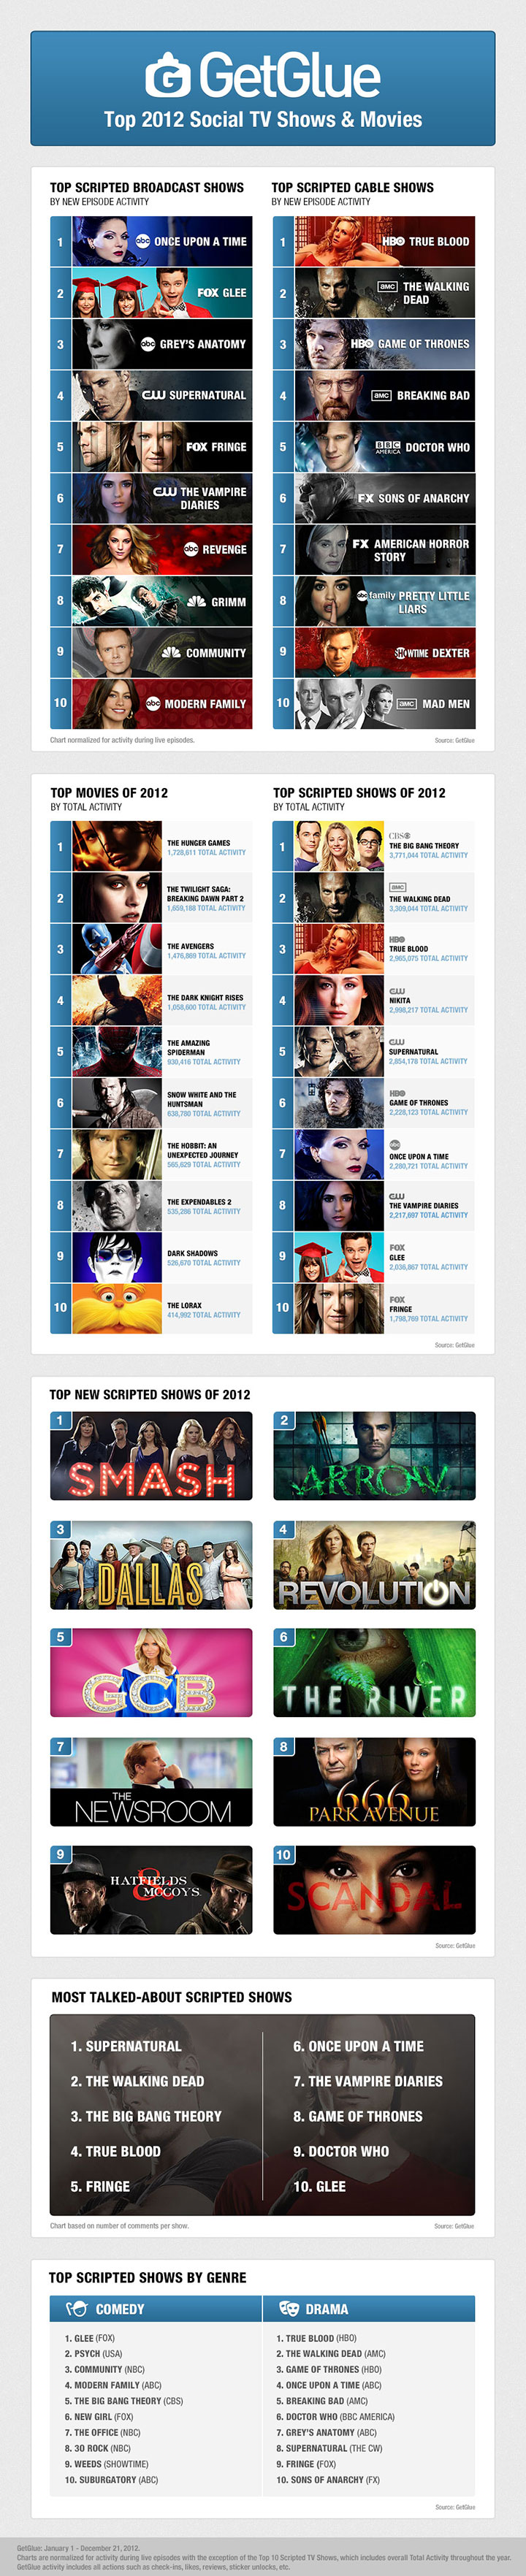 GetGlue: Top 2012 Social TV Shows & Movies [INFOGRAPHIC]